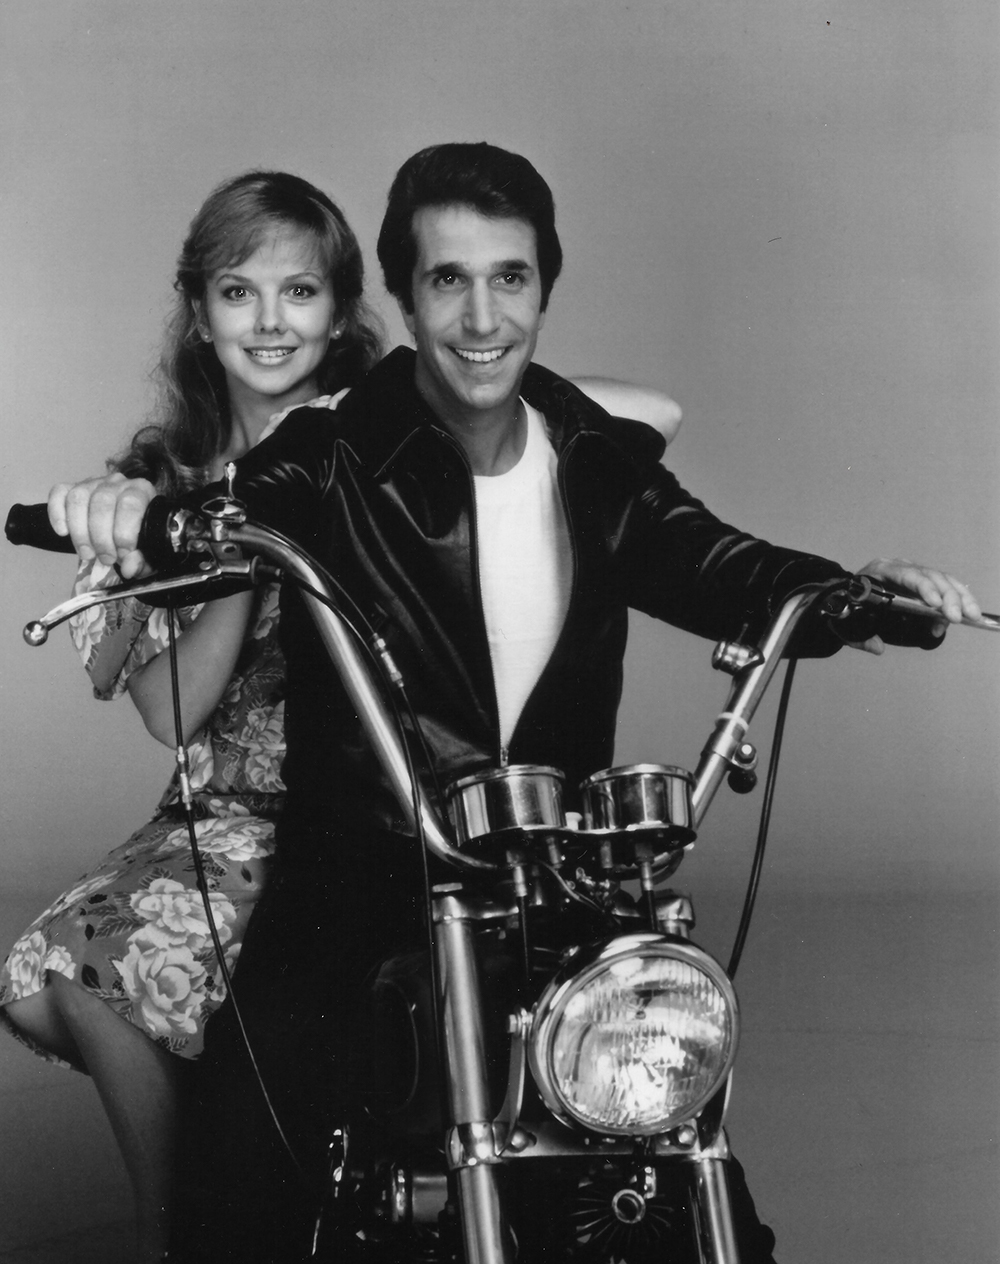 Linda and The Fonz